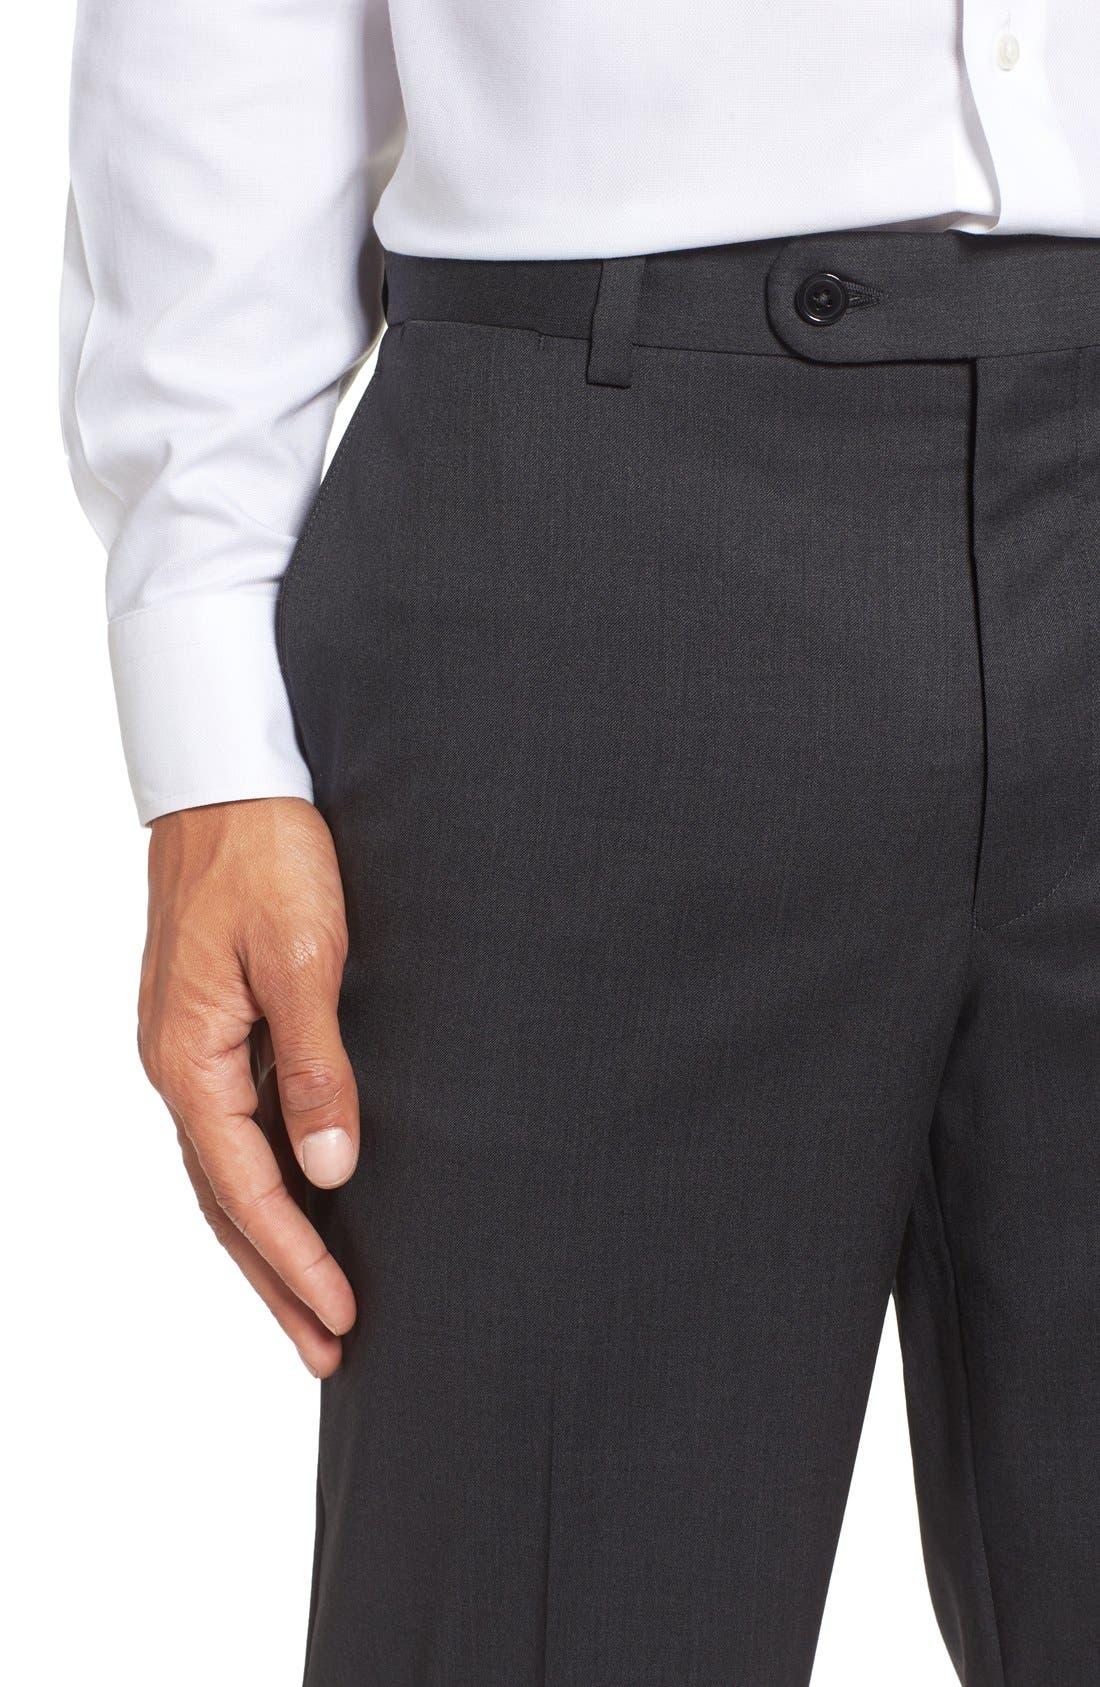 RIVIERA,                             Flat Front Solid Wool Trousers,                             Alternate thumbnail 5, color,                             010